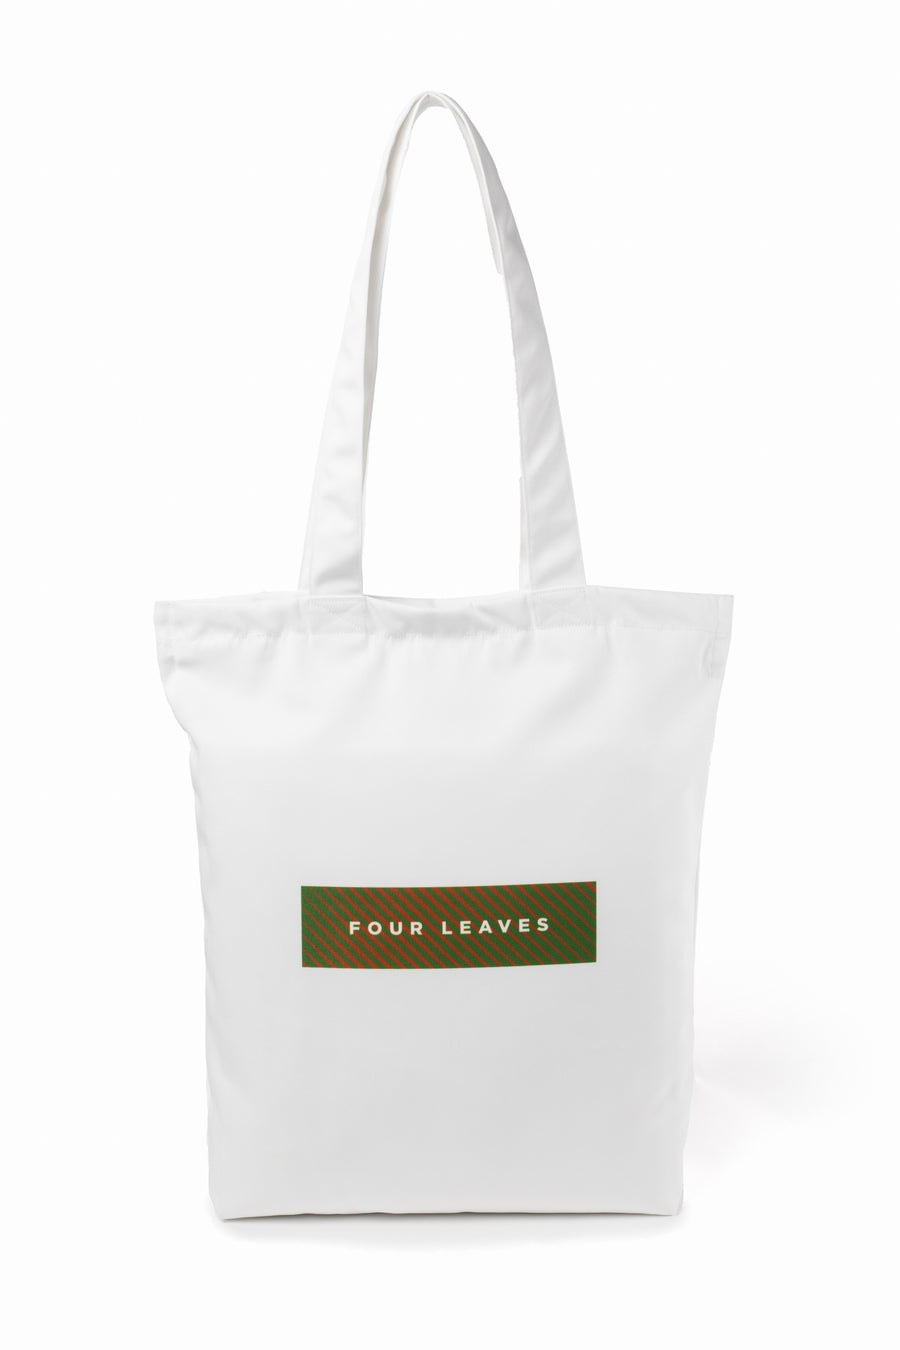 Canvas tote bag - Four Leaves